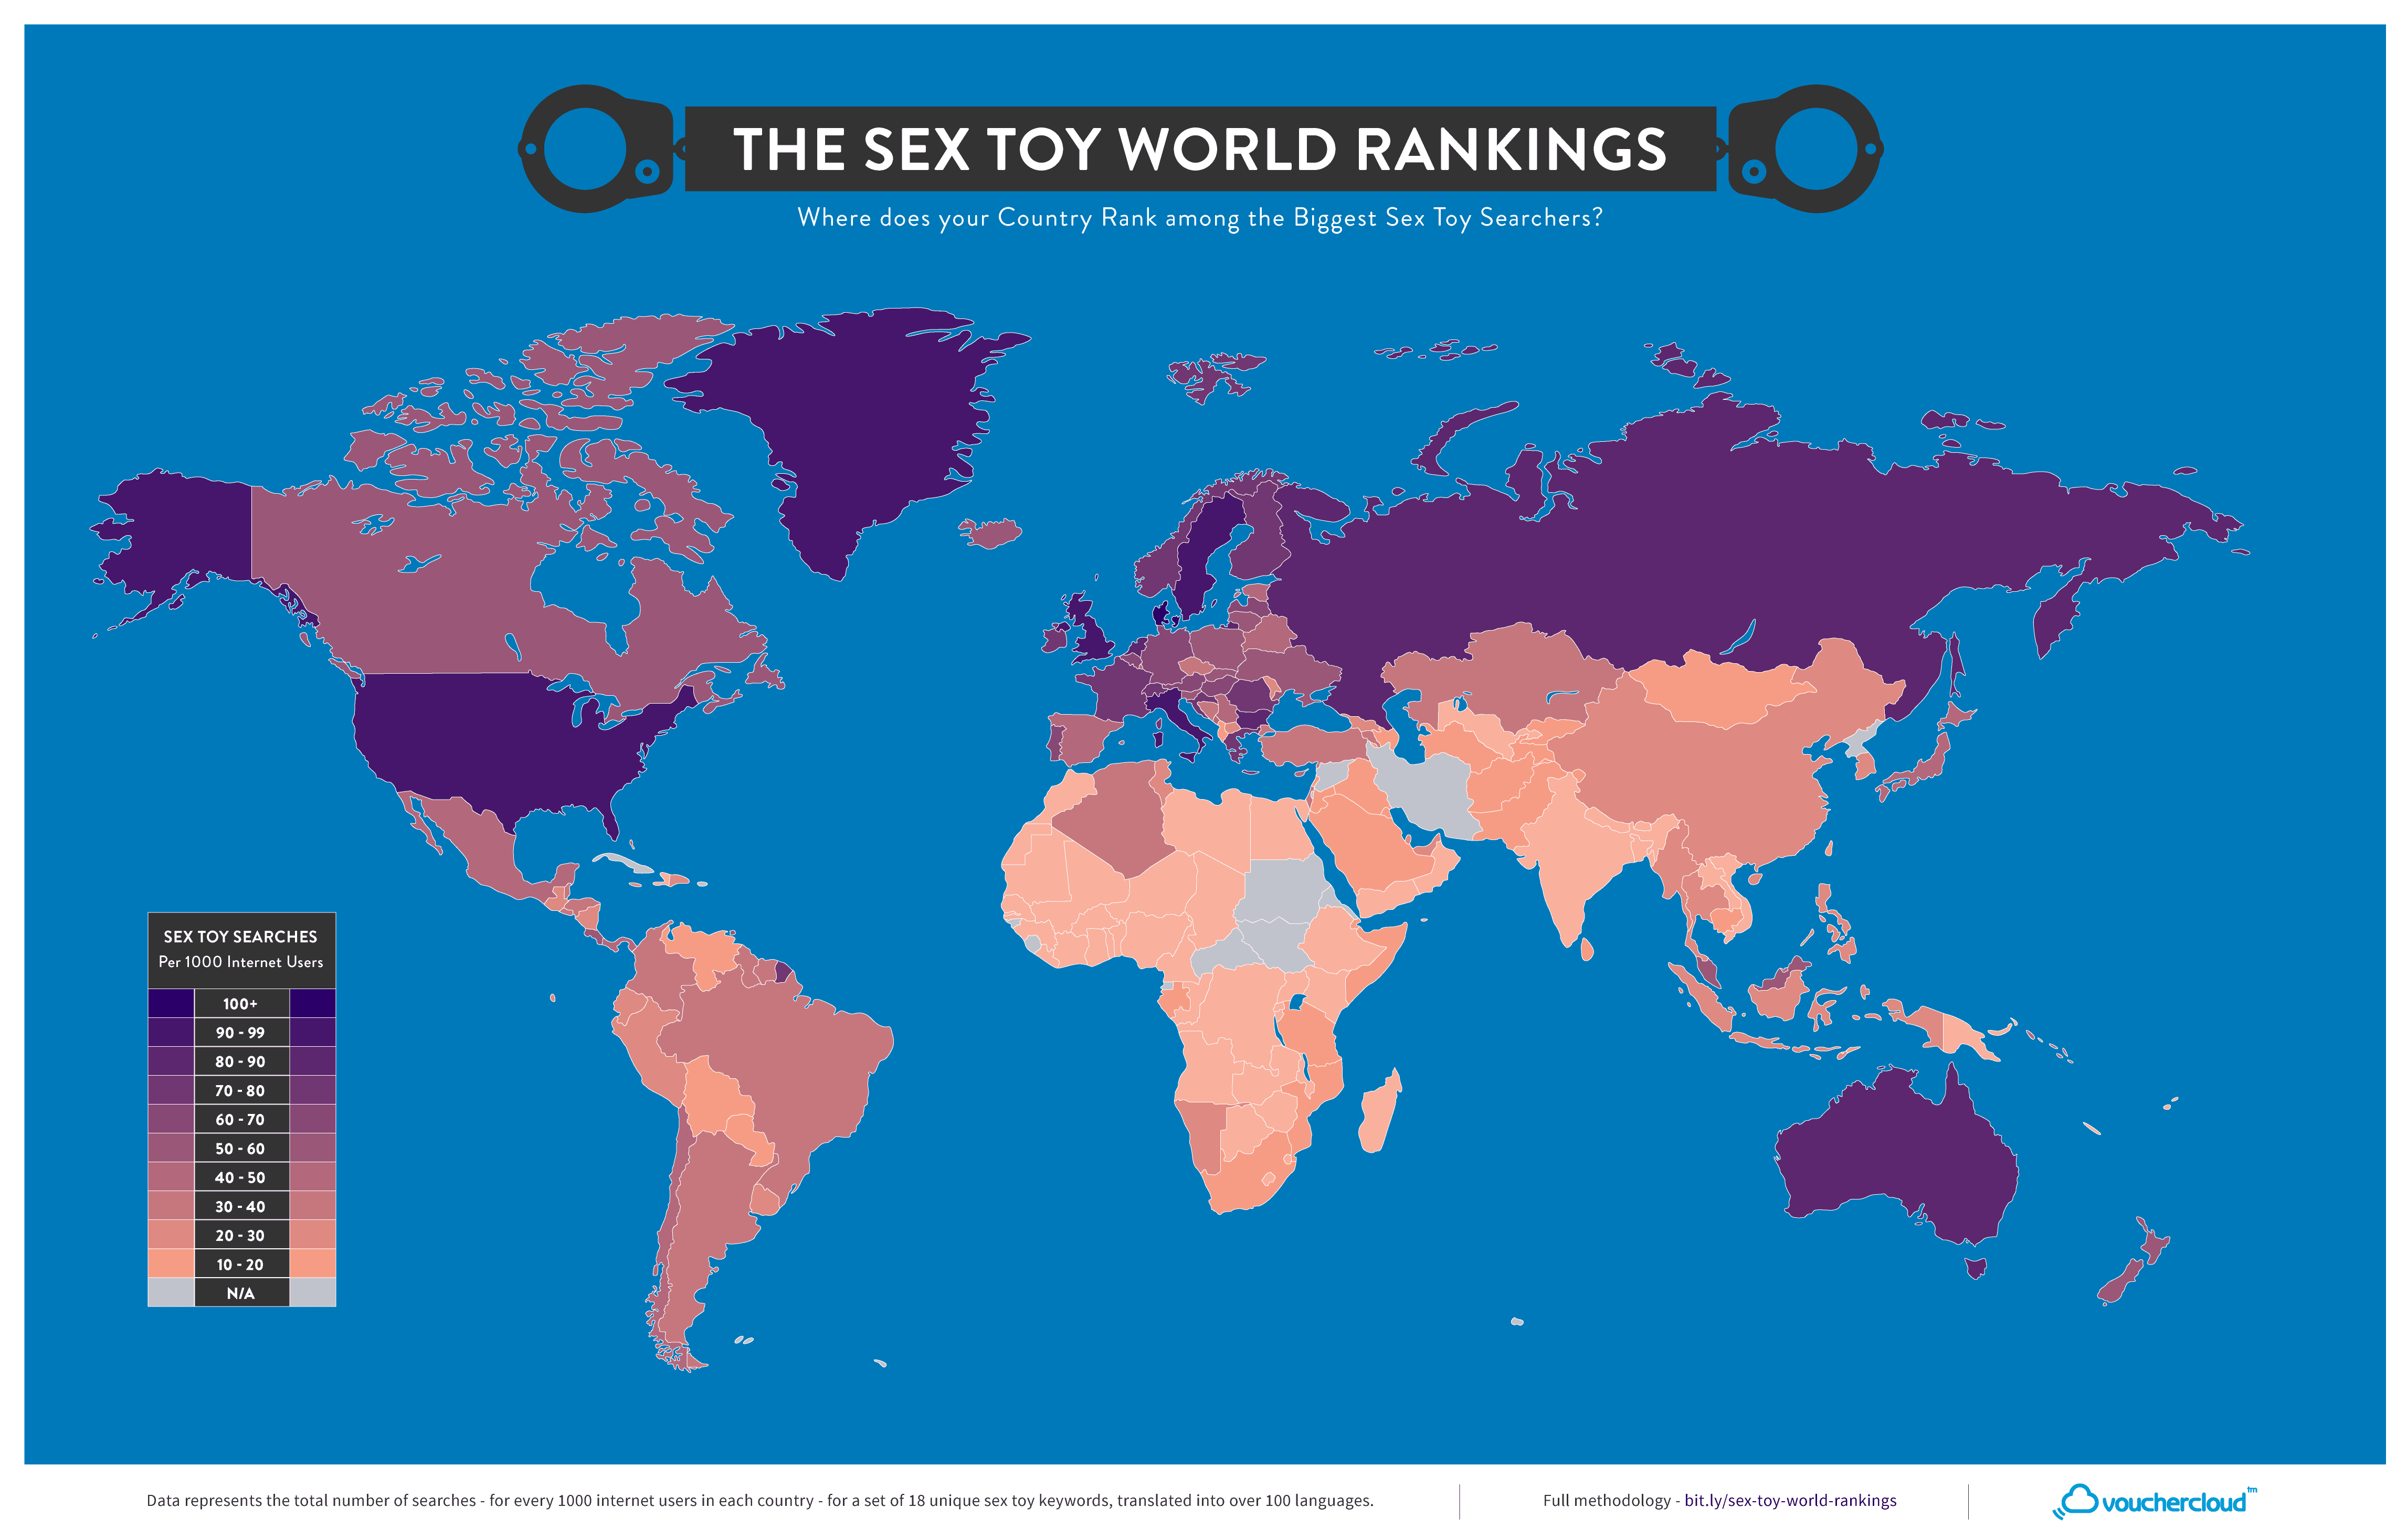 Sex Toy World Rankings - Map (minus labels)